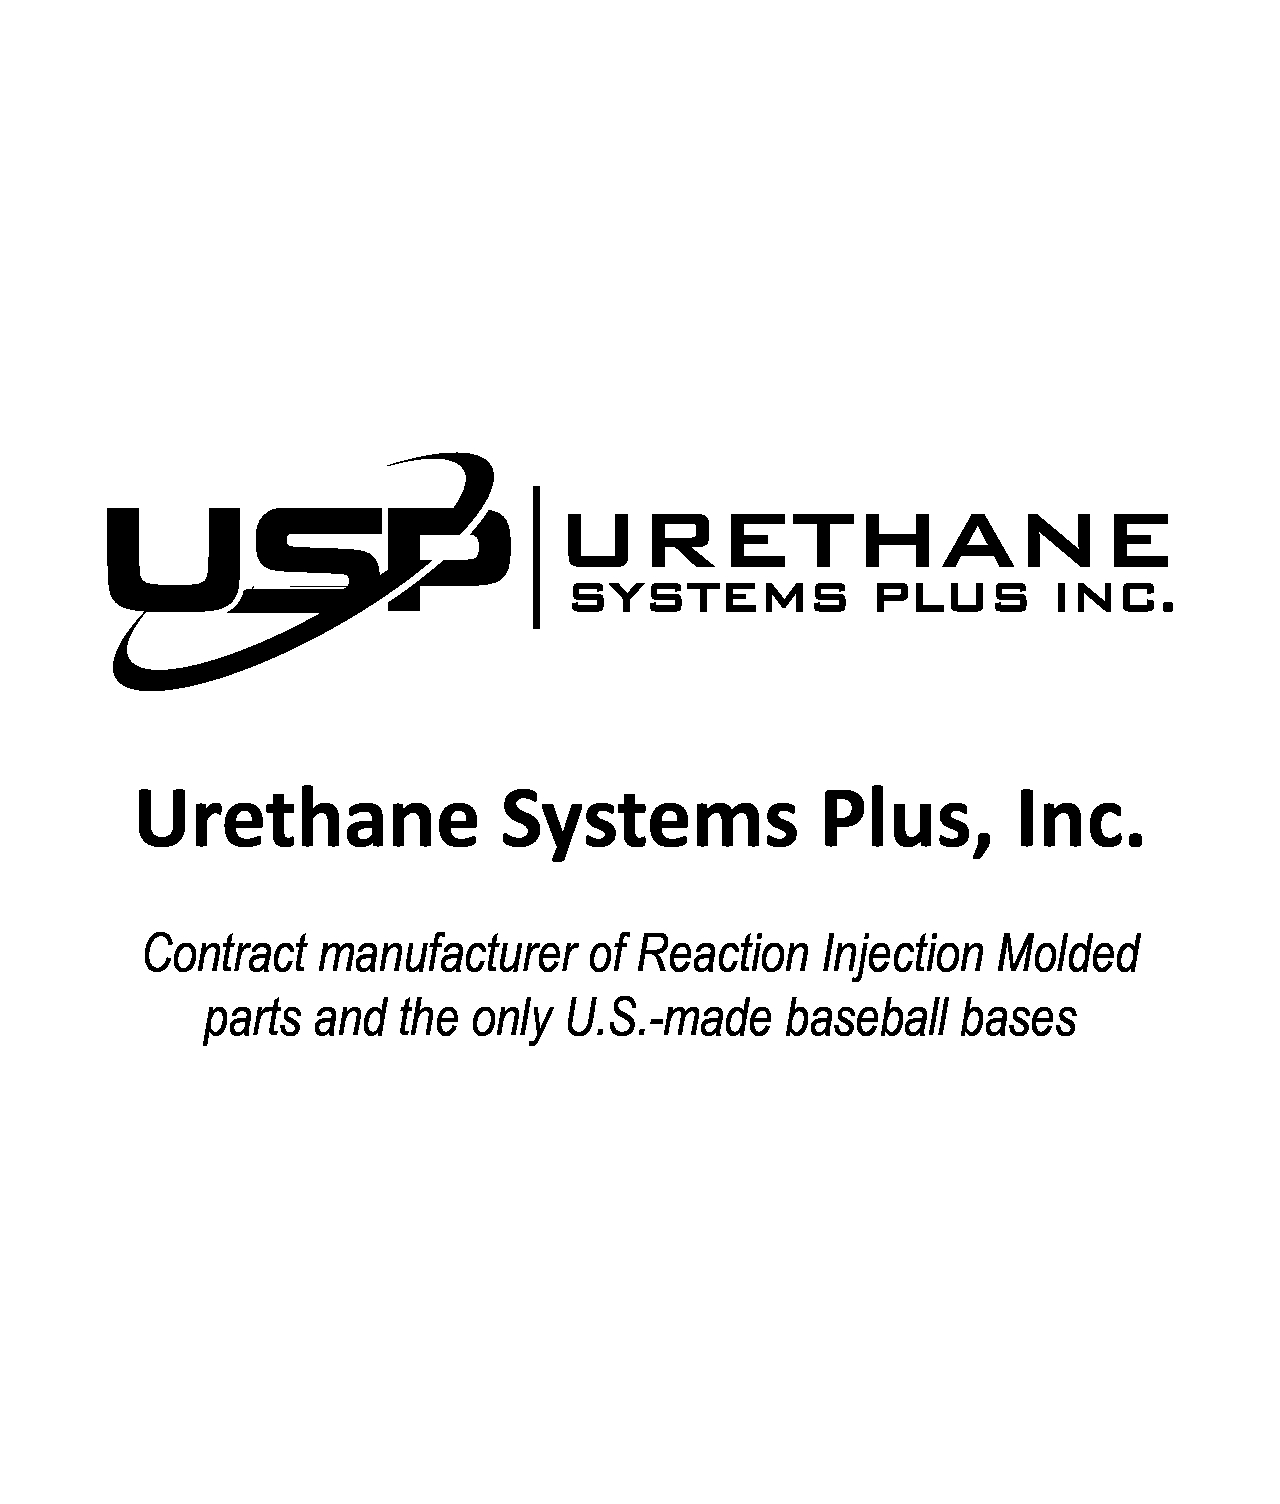 Urethane Systems Plus Inc.